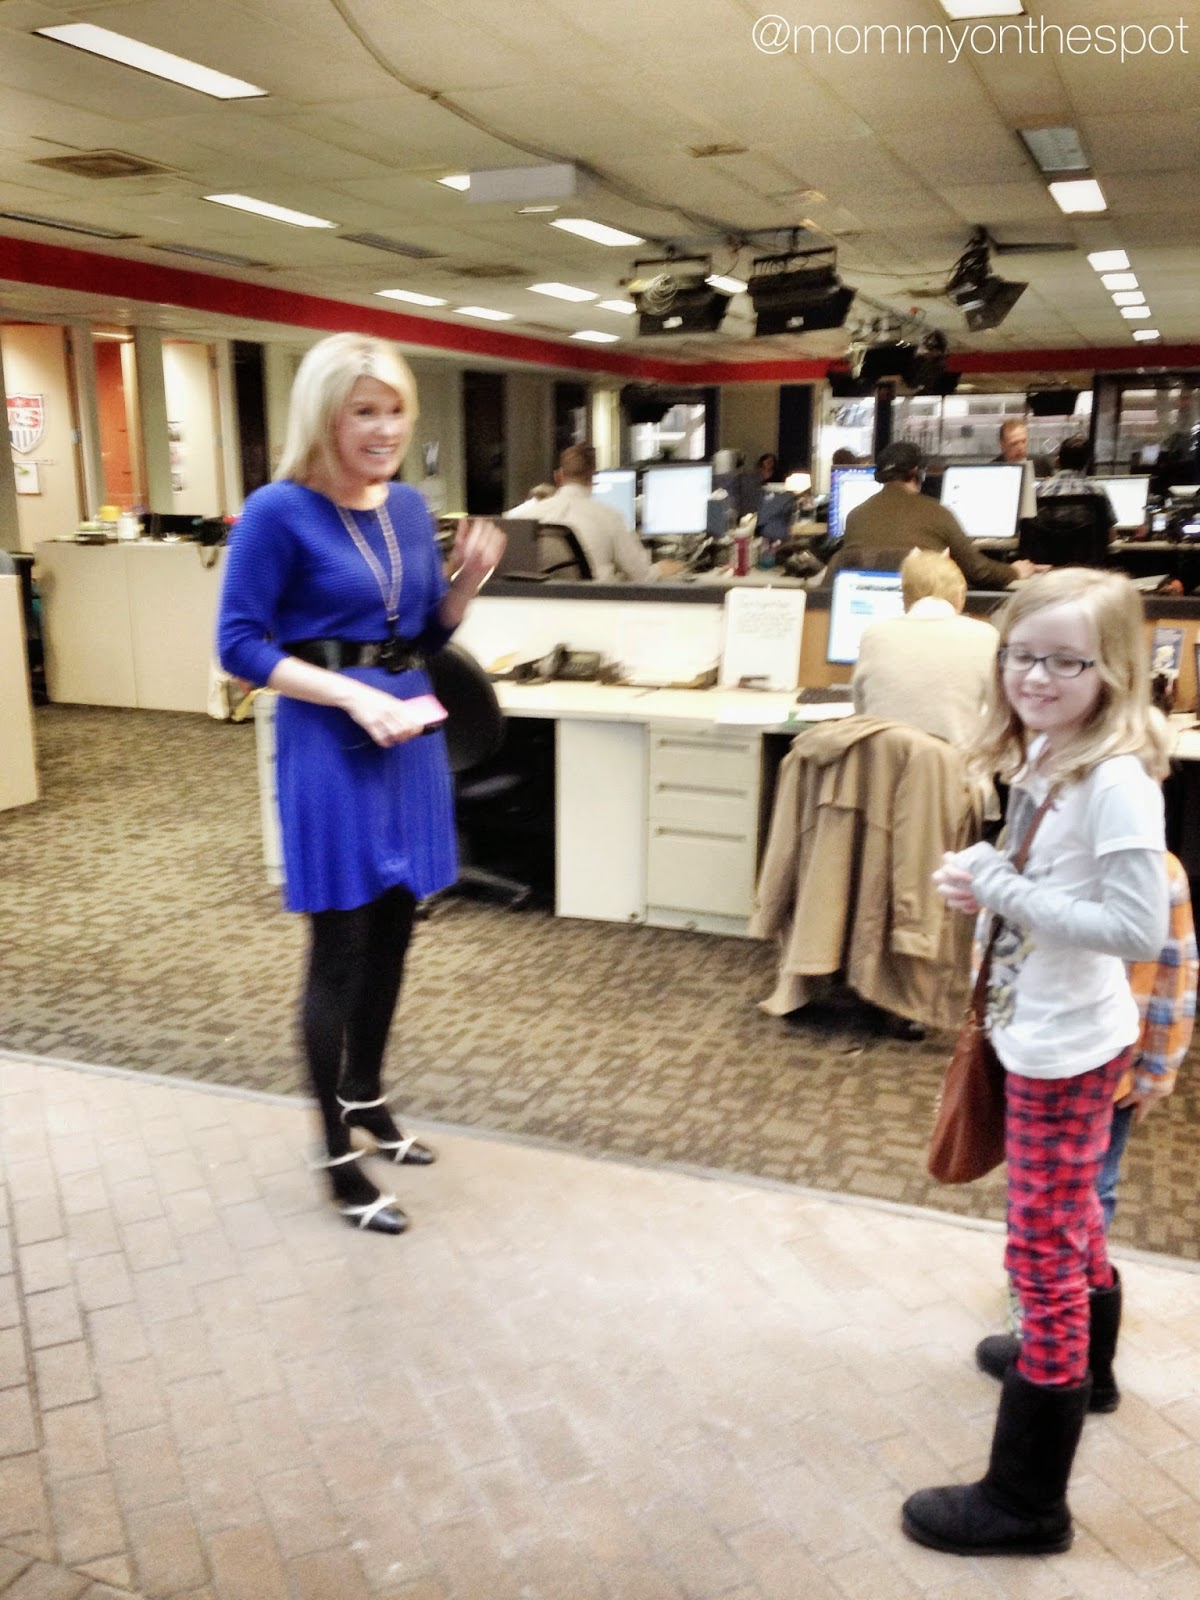 Mommy on the Spot Erin Janda Rawlings Staycation Live in the D Local 4 Karen Drew